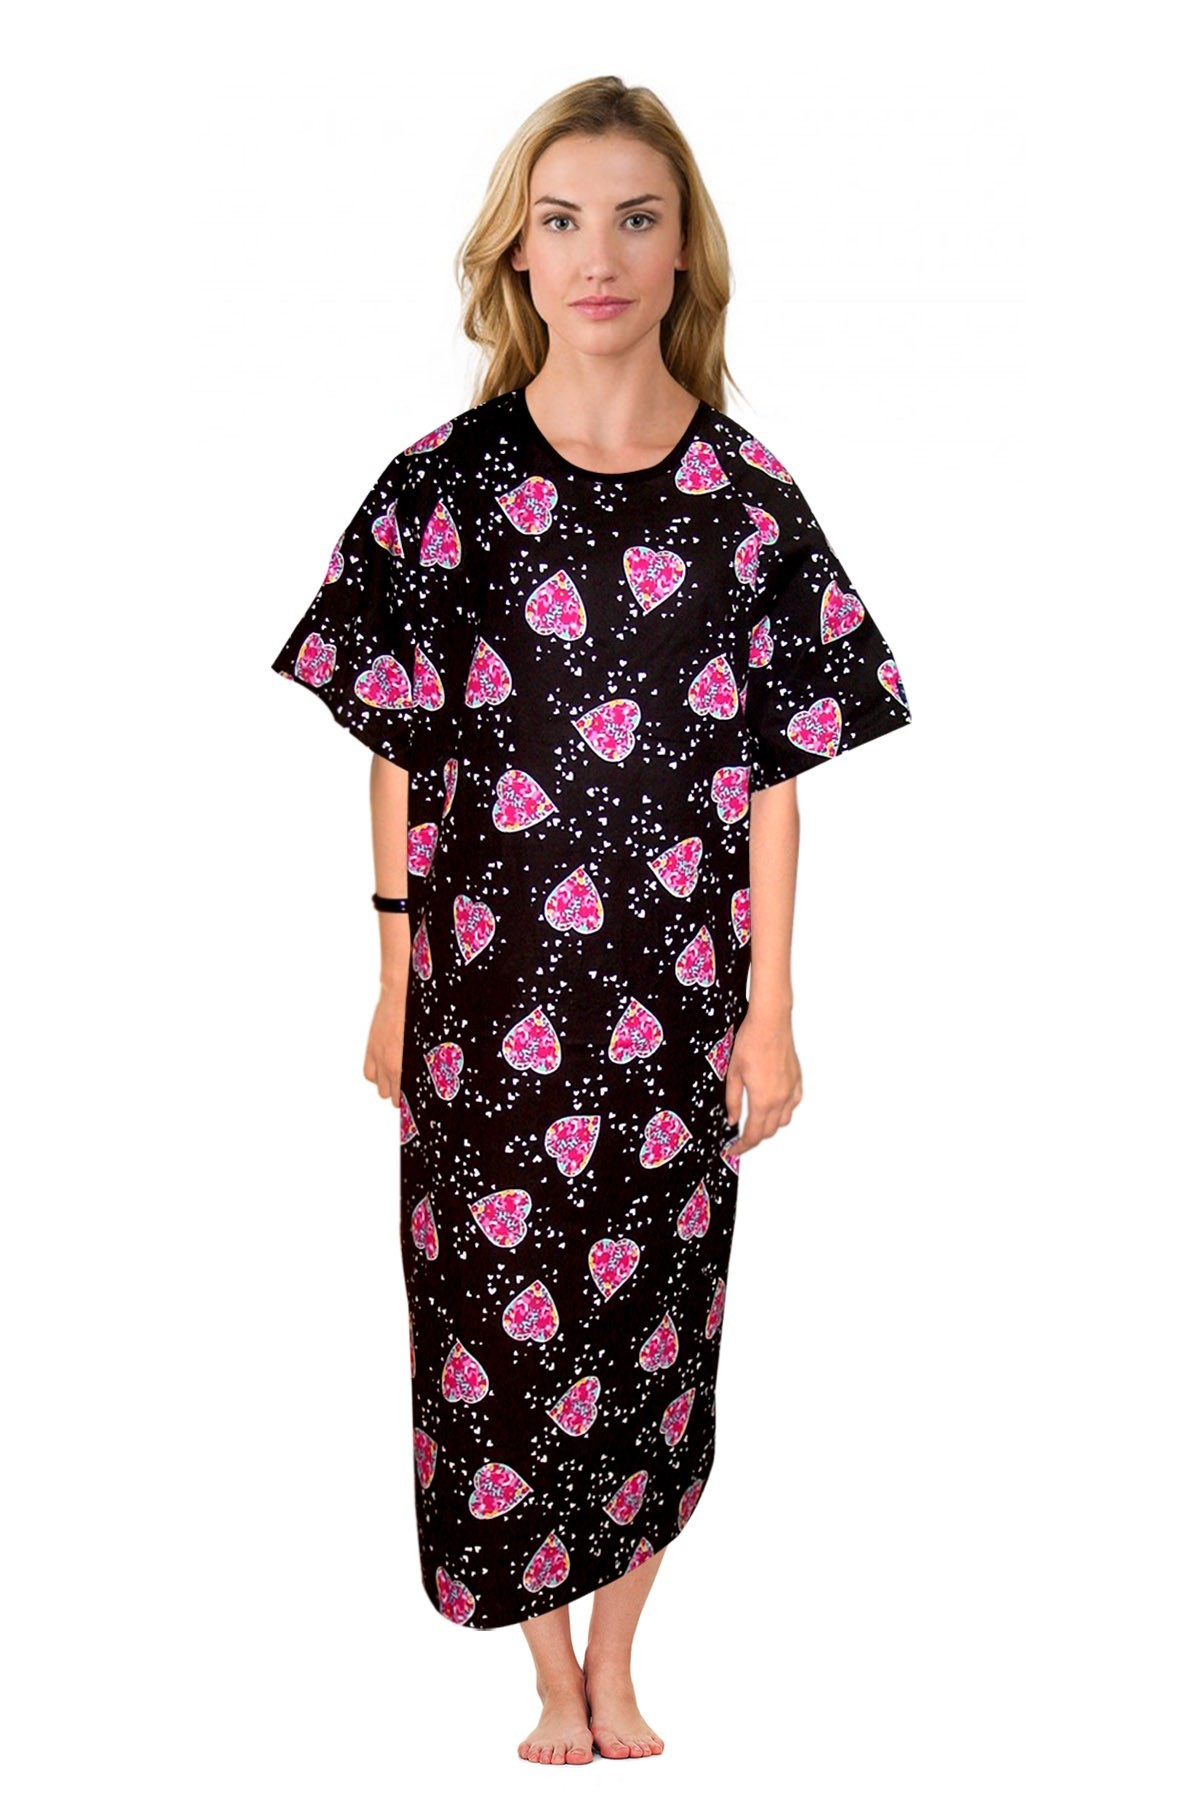 Patient gown half sleeve printed back open, tie-able  from two points pink blue big heart print Chest 54 Inches Length 45 inches $6.25 and Chest 80 inches Length 49 inches $9.25